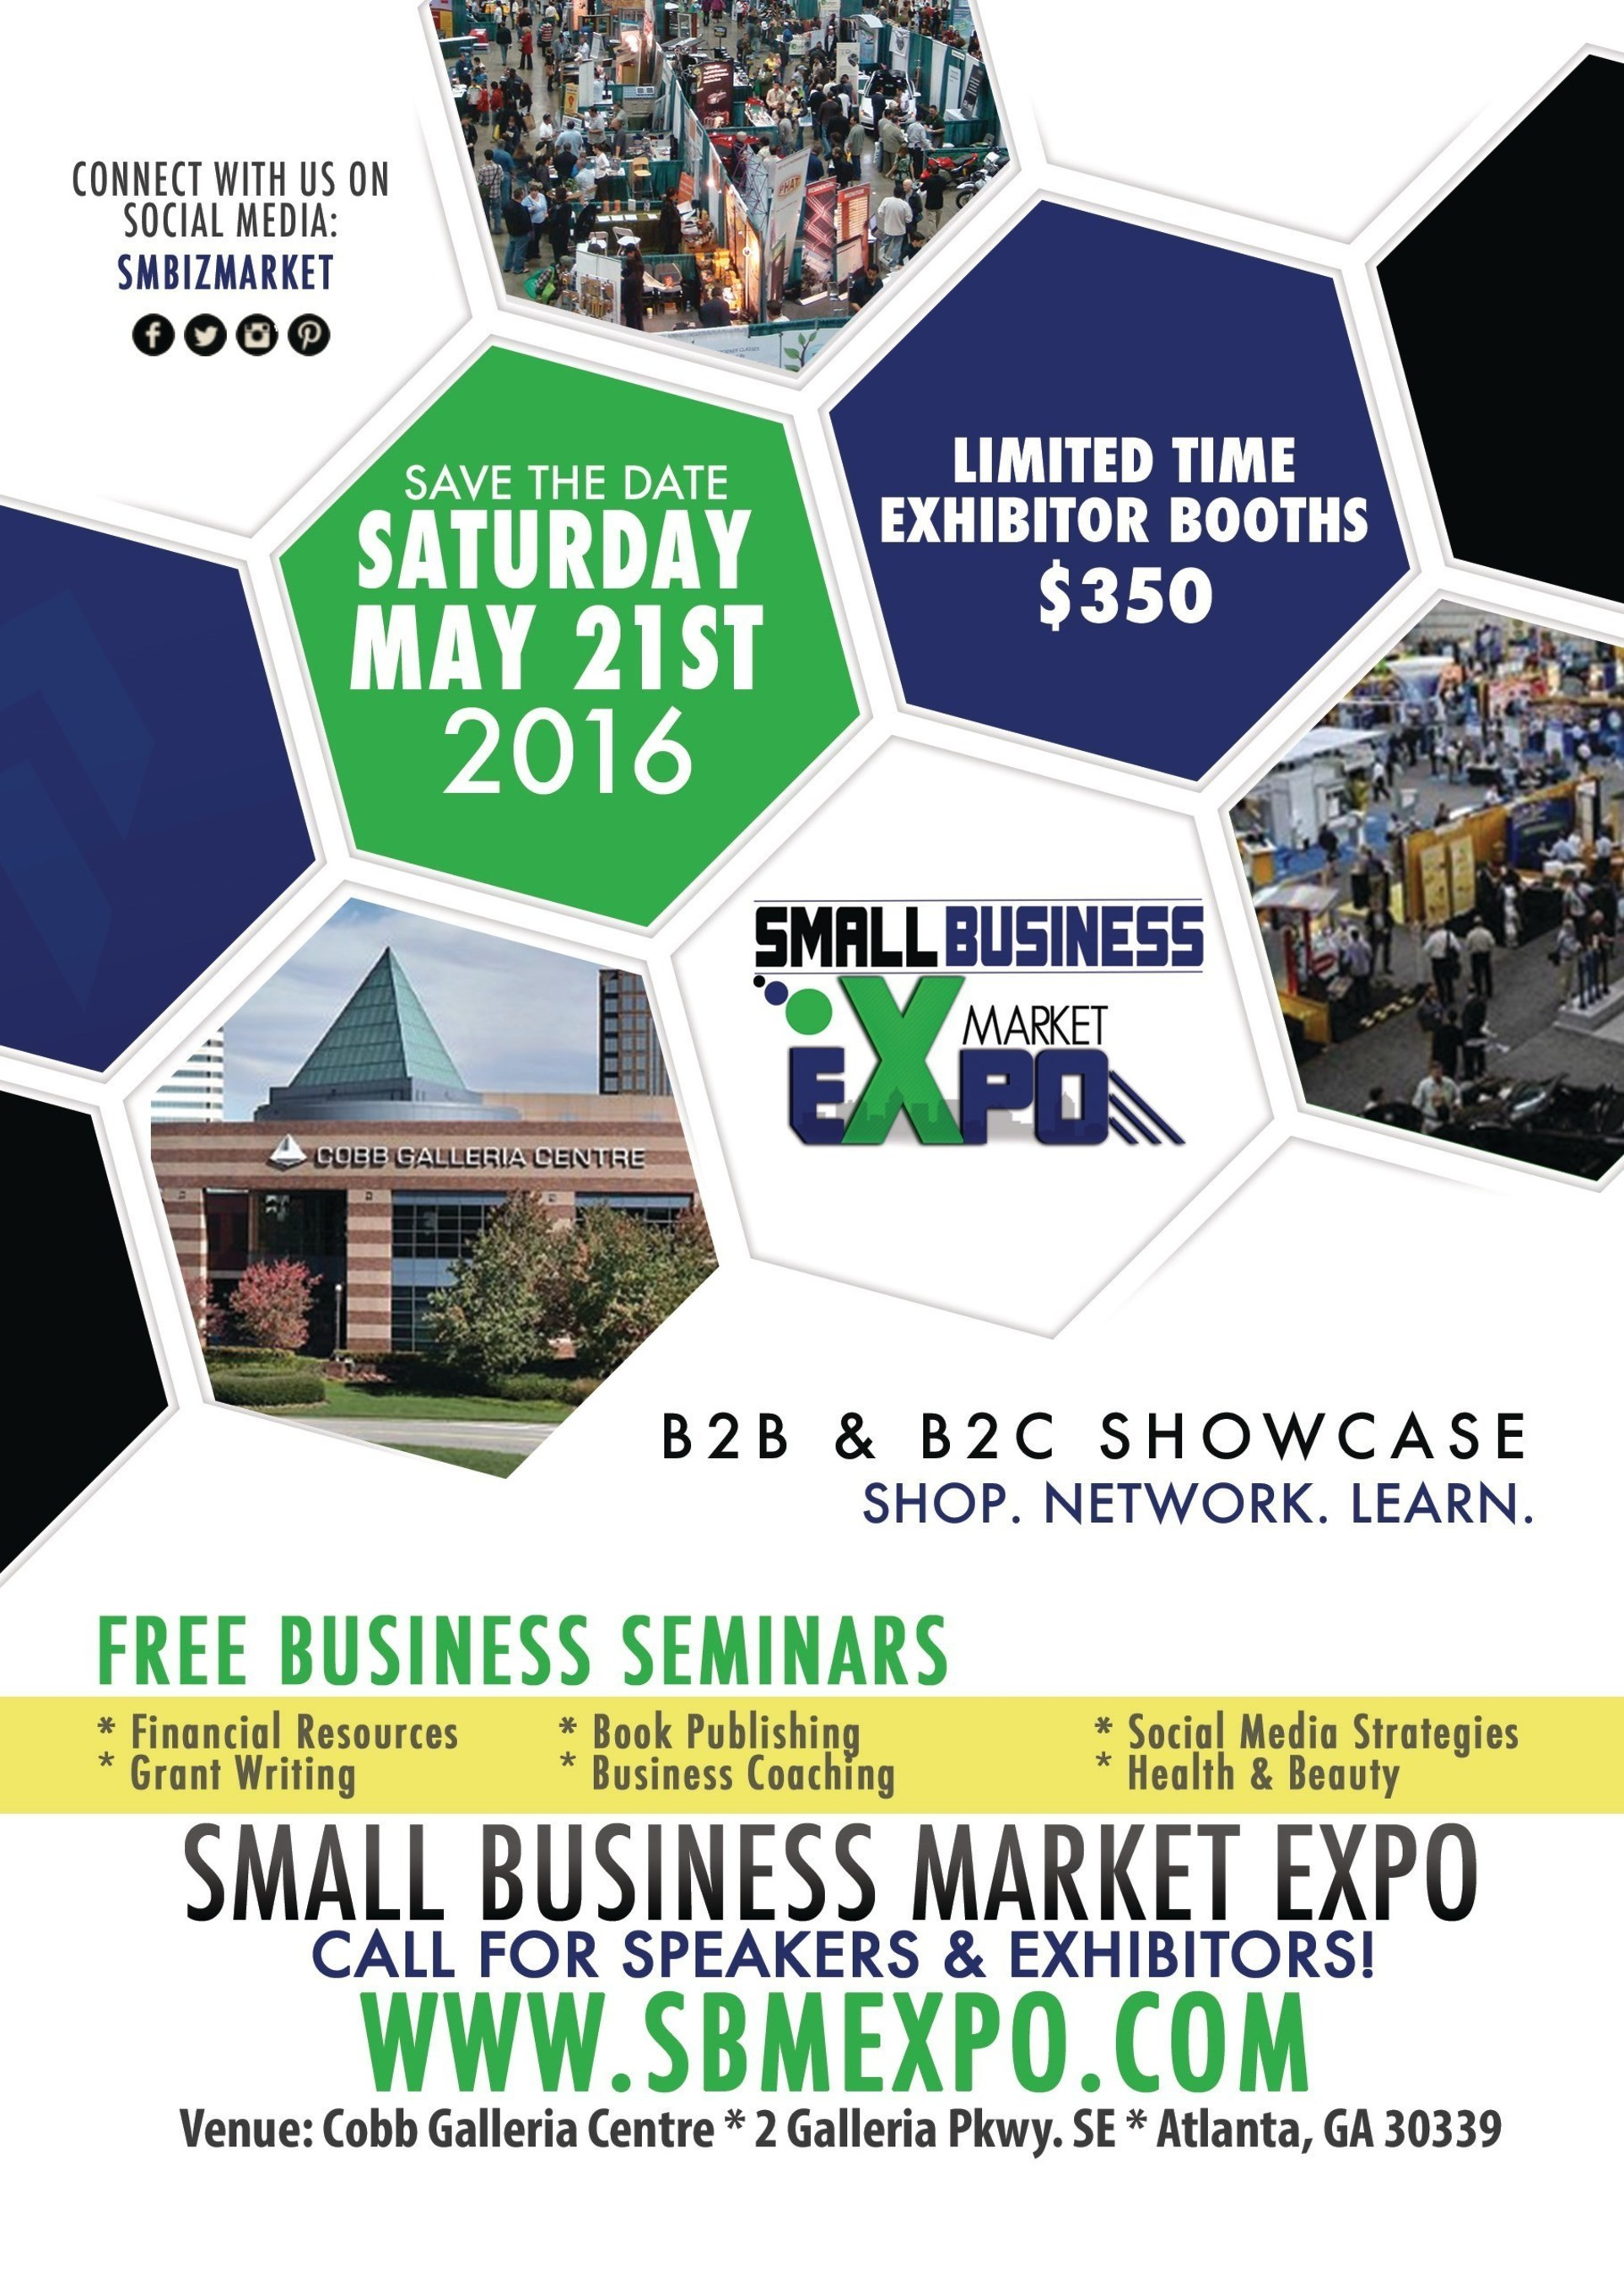 Small Business Market Expo Announces Expo Date and Keynote Speakers